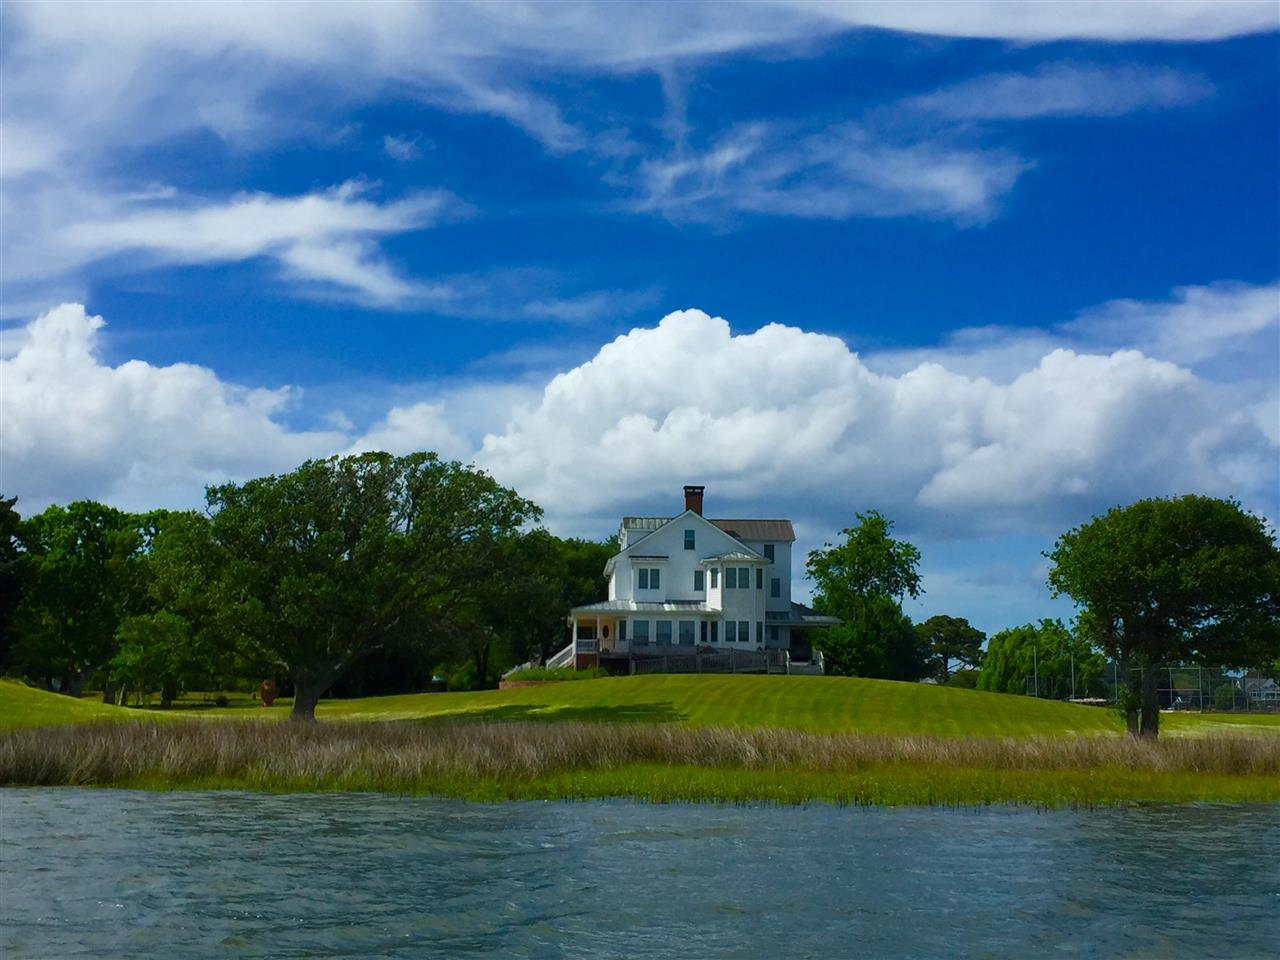 A day on the water at Emerald Isle, NC